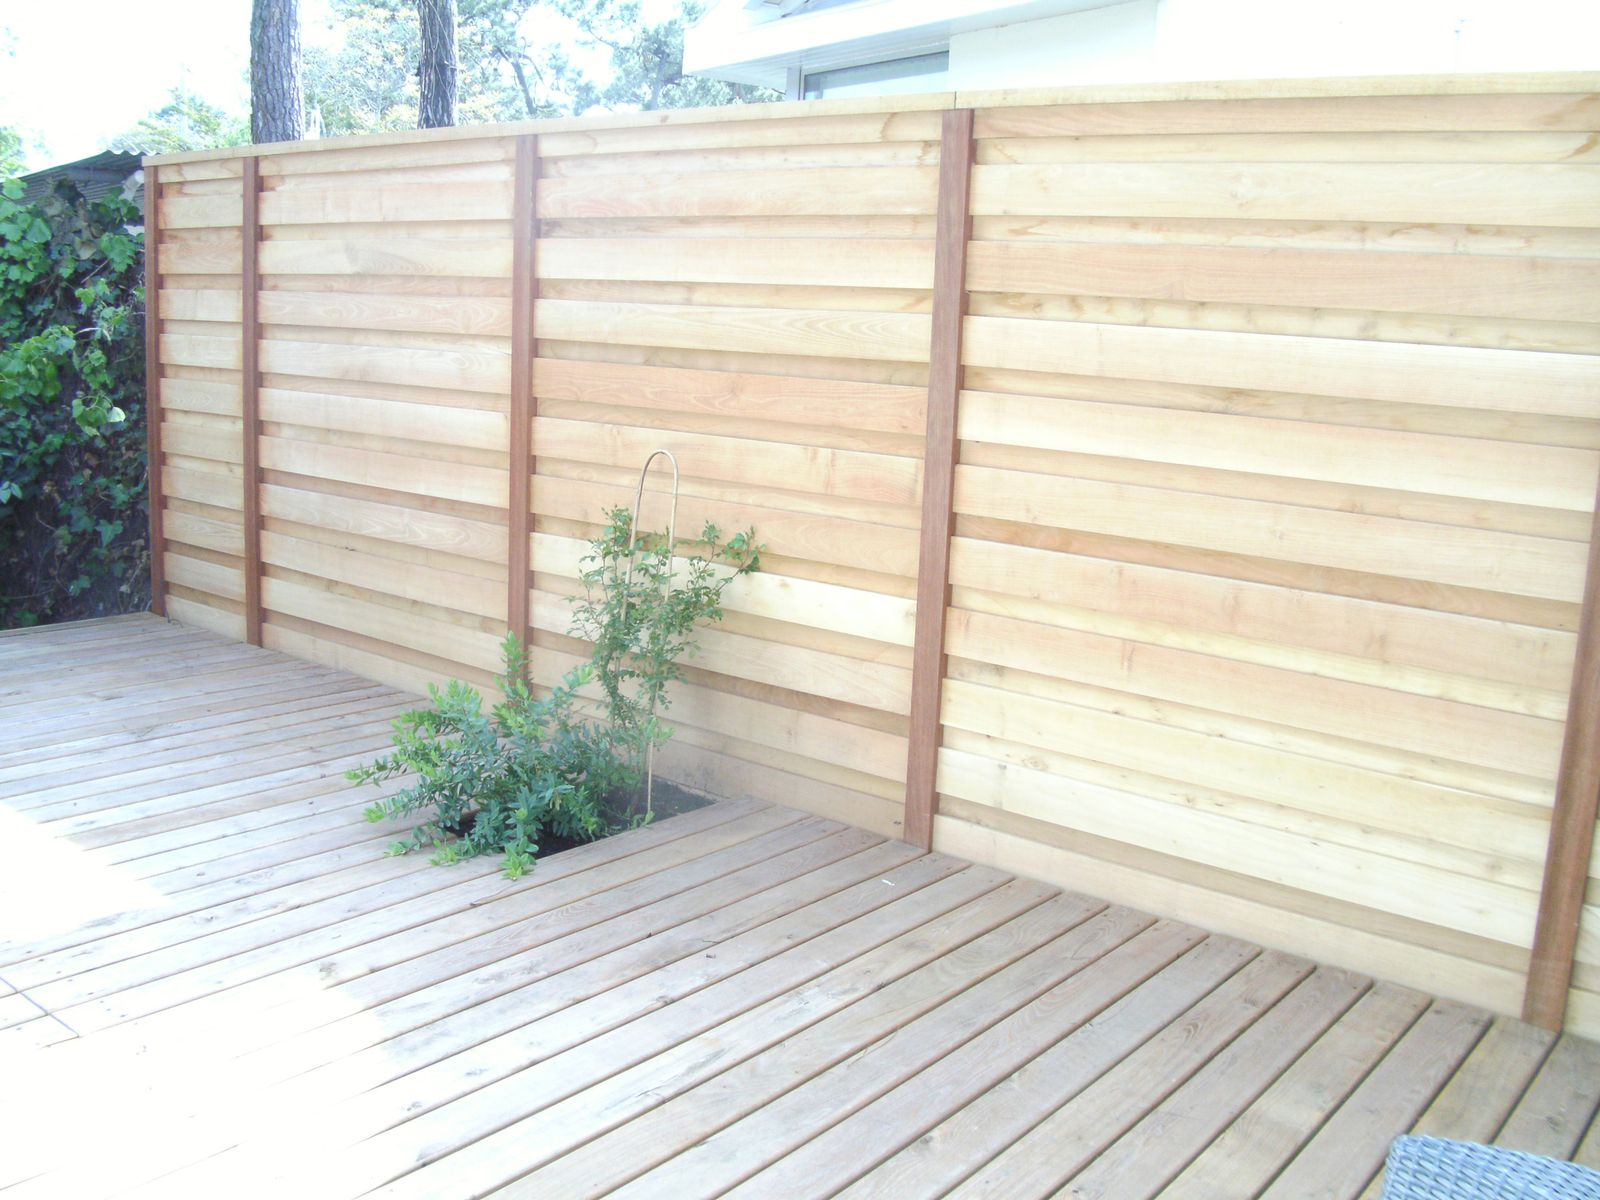 Bardage isolation par l 39 ext rieur terrasse cl ture bois for Isolation terrasse exterieure